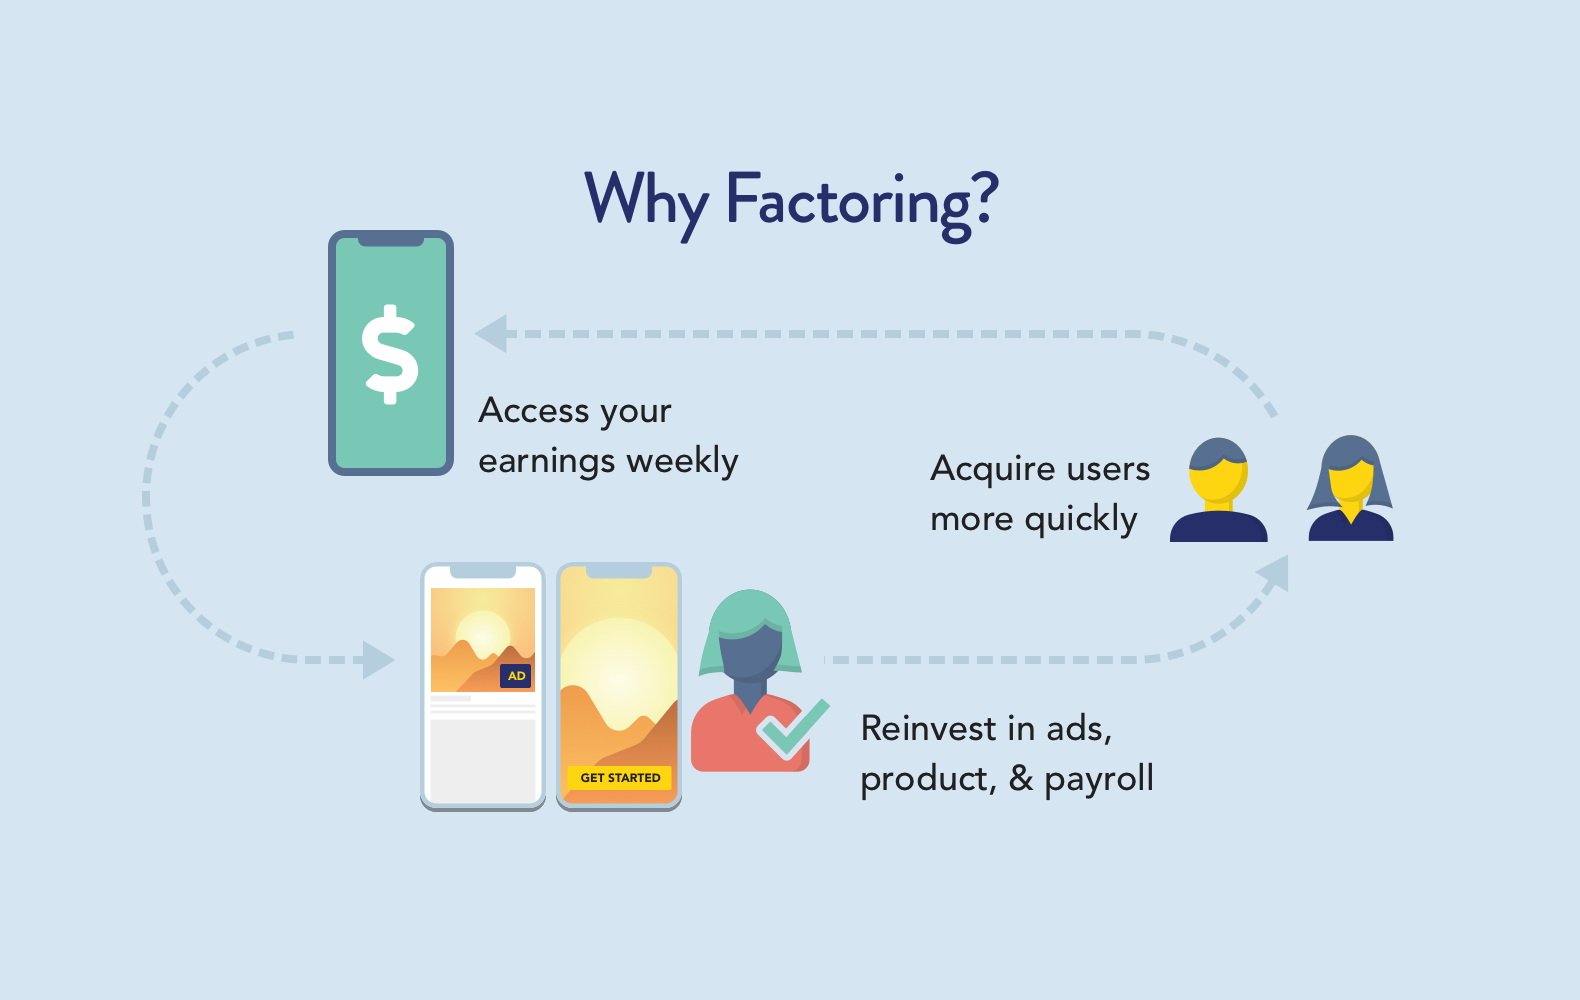 Factoring for mobile apps